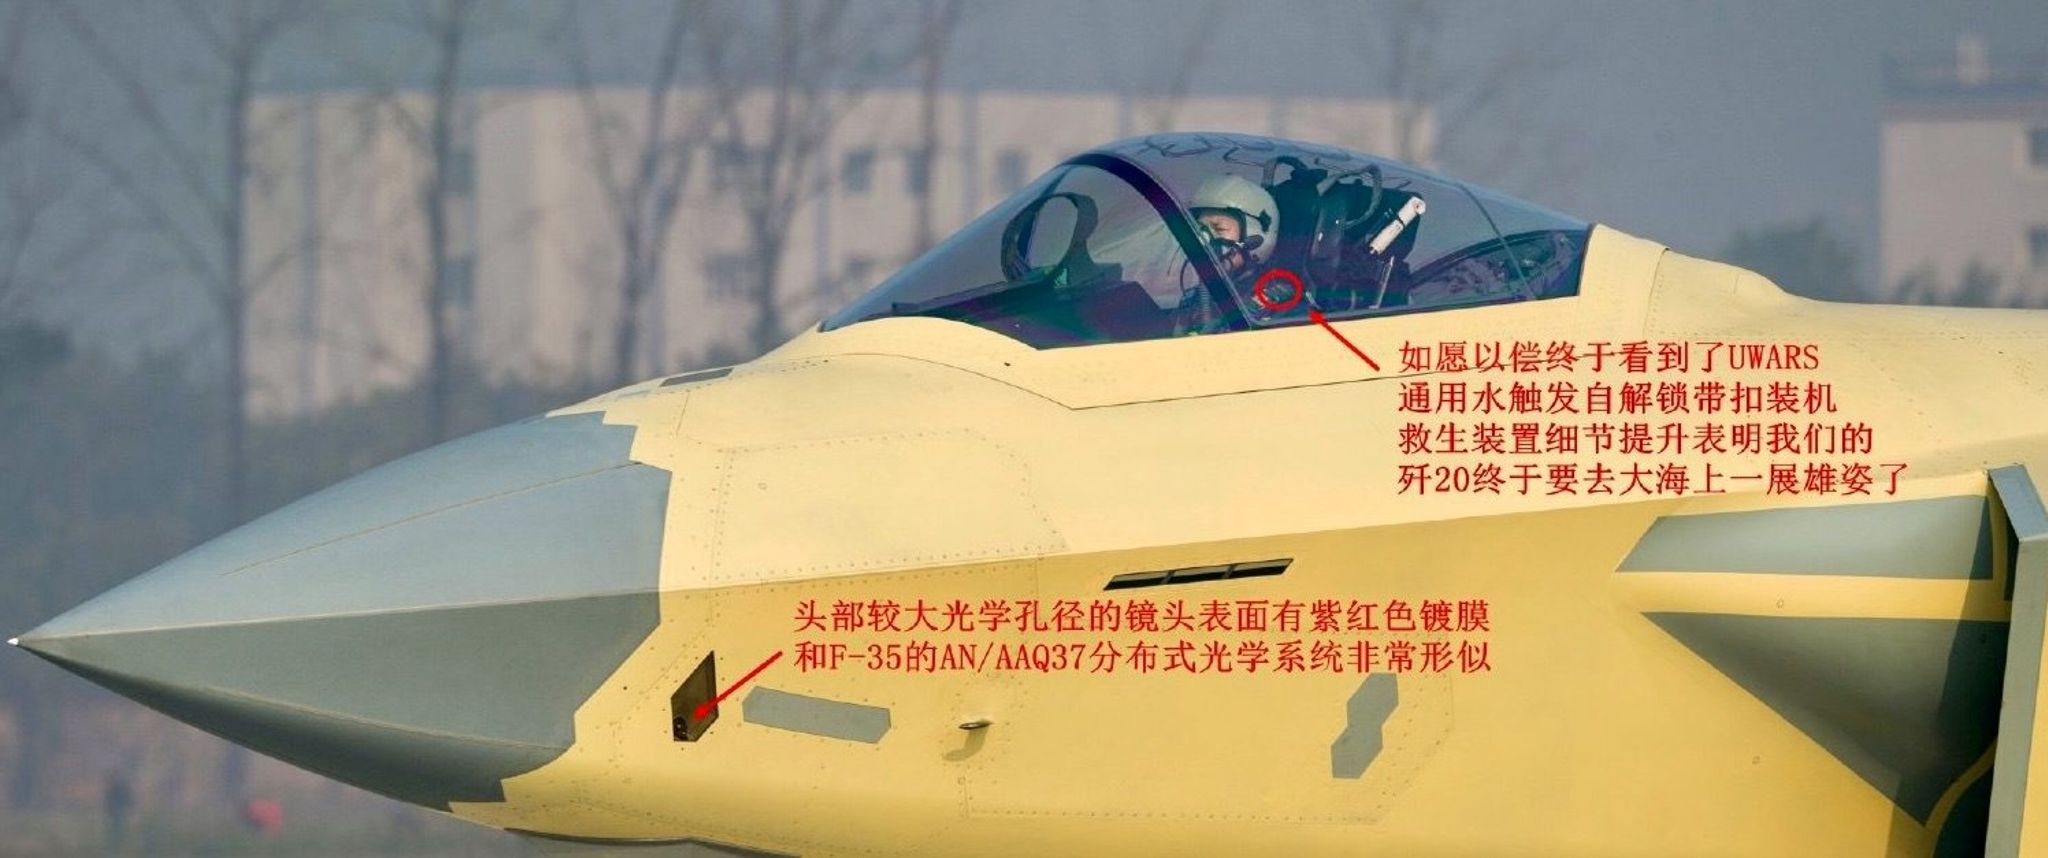 Chinese jet shows off U.S. tech